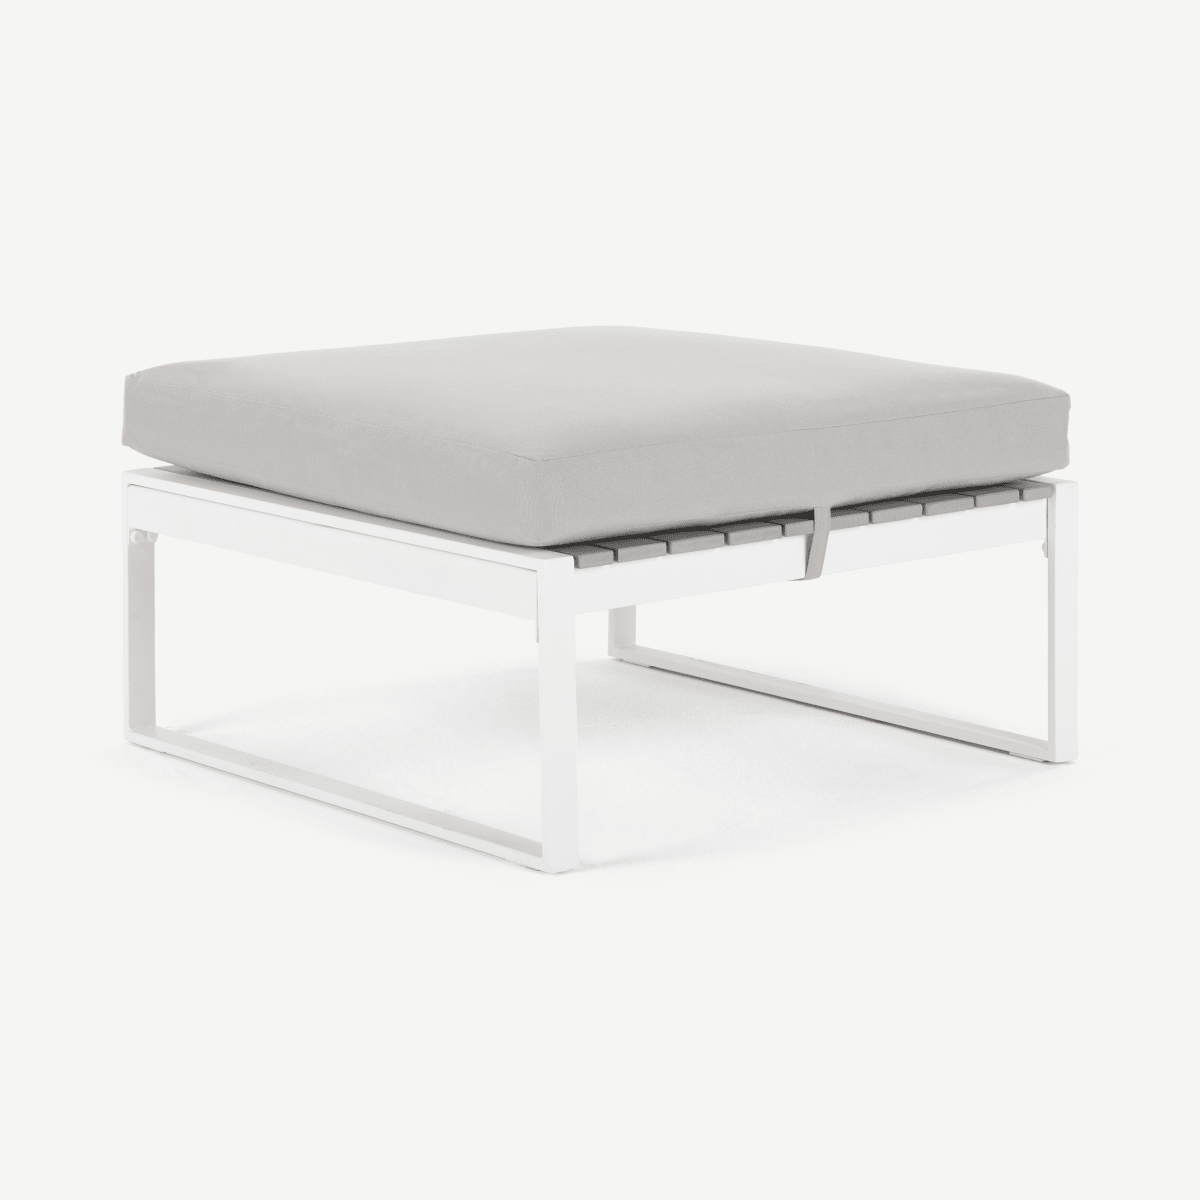 Catania Garden Modular Ottoman, White and Polywood